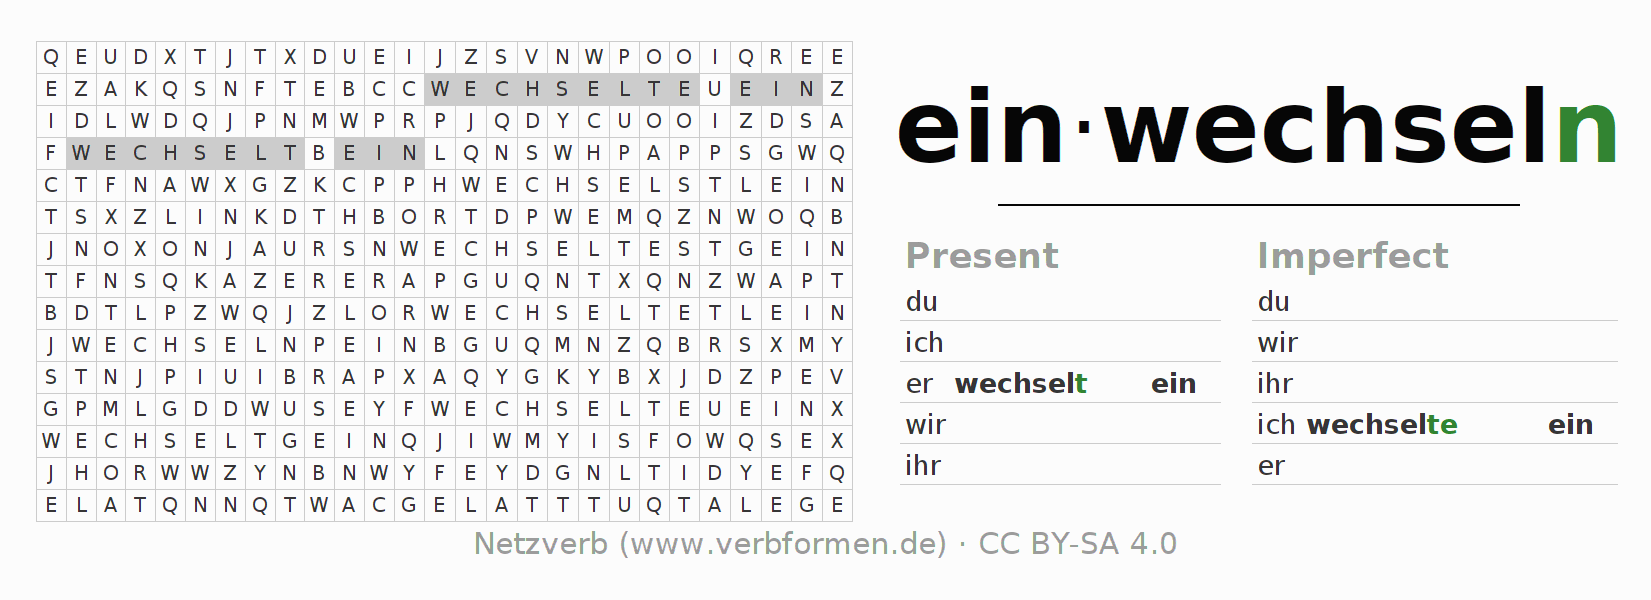 Word search puzzle for the conjugation of the verb einwechseln (hat)